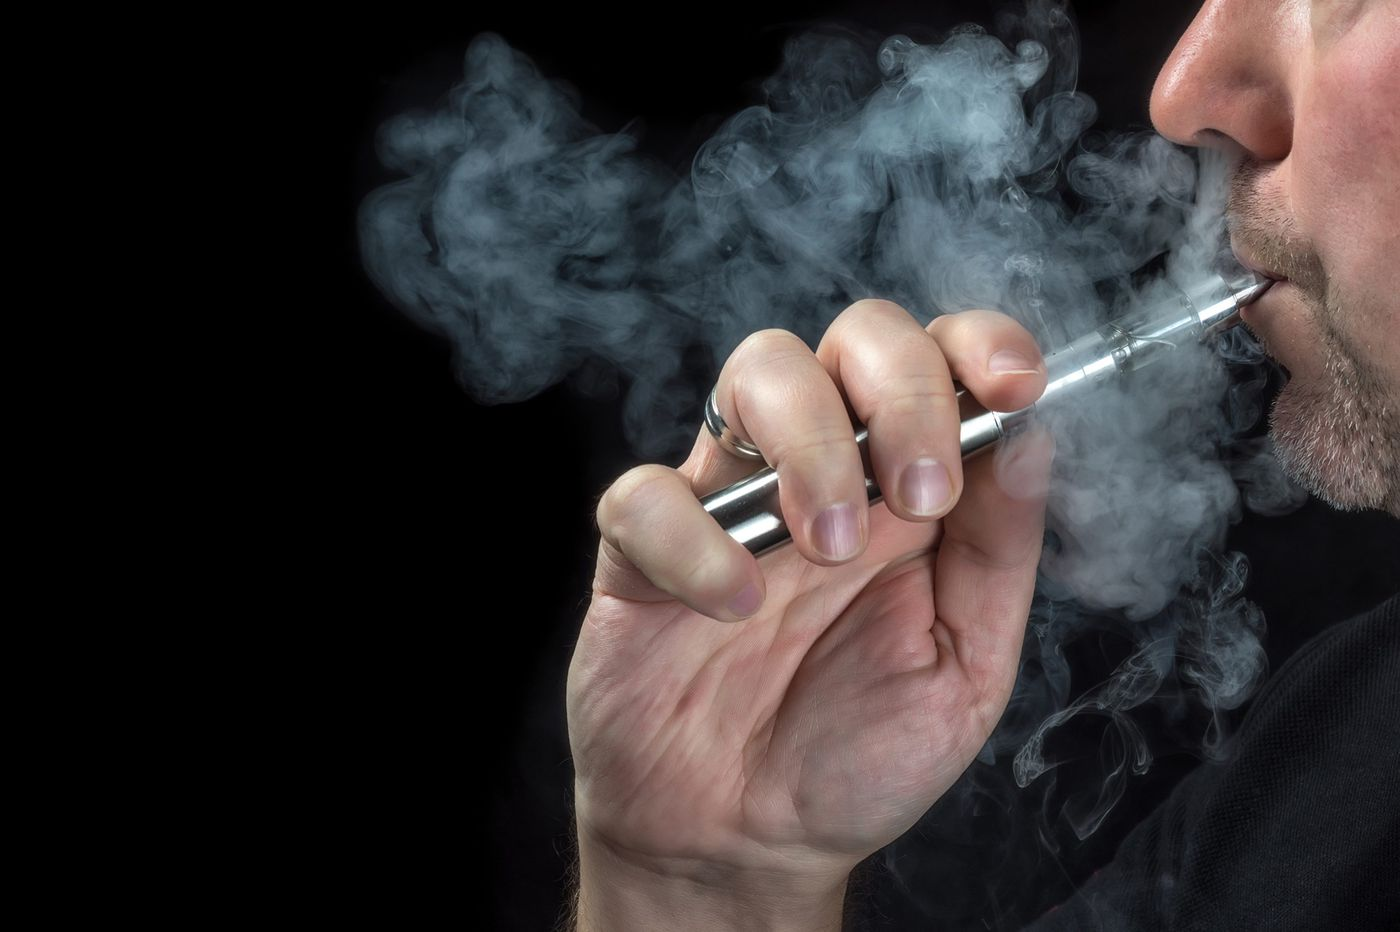 E-cig manufacturer warned for selling liquids containing erectile dysfunction drugs